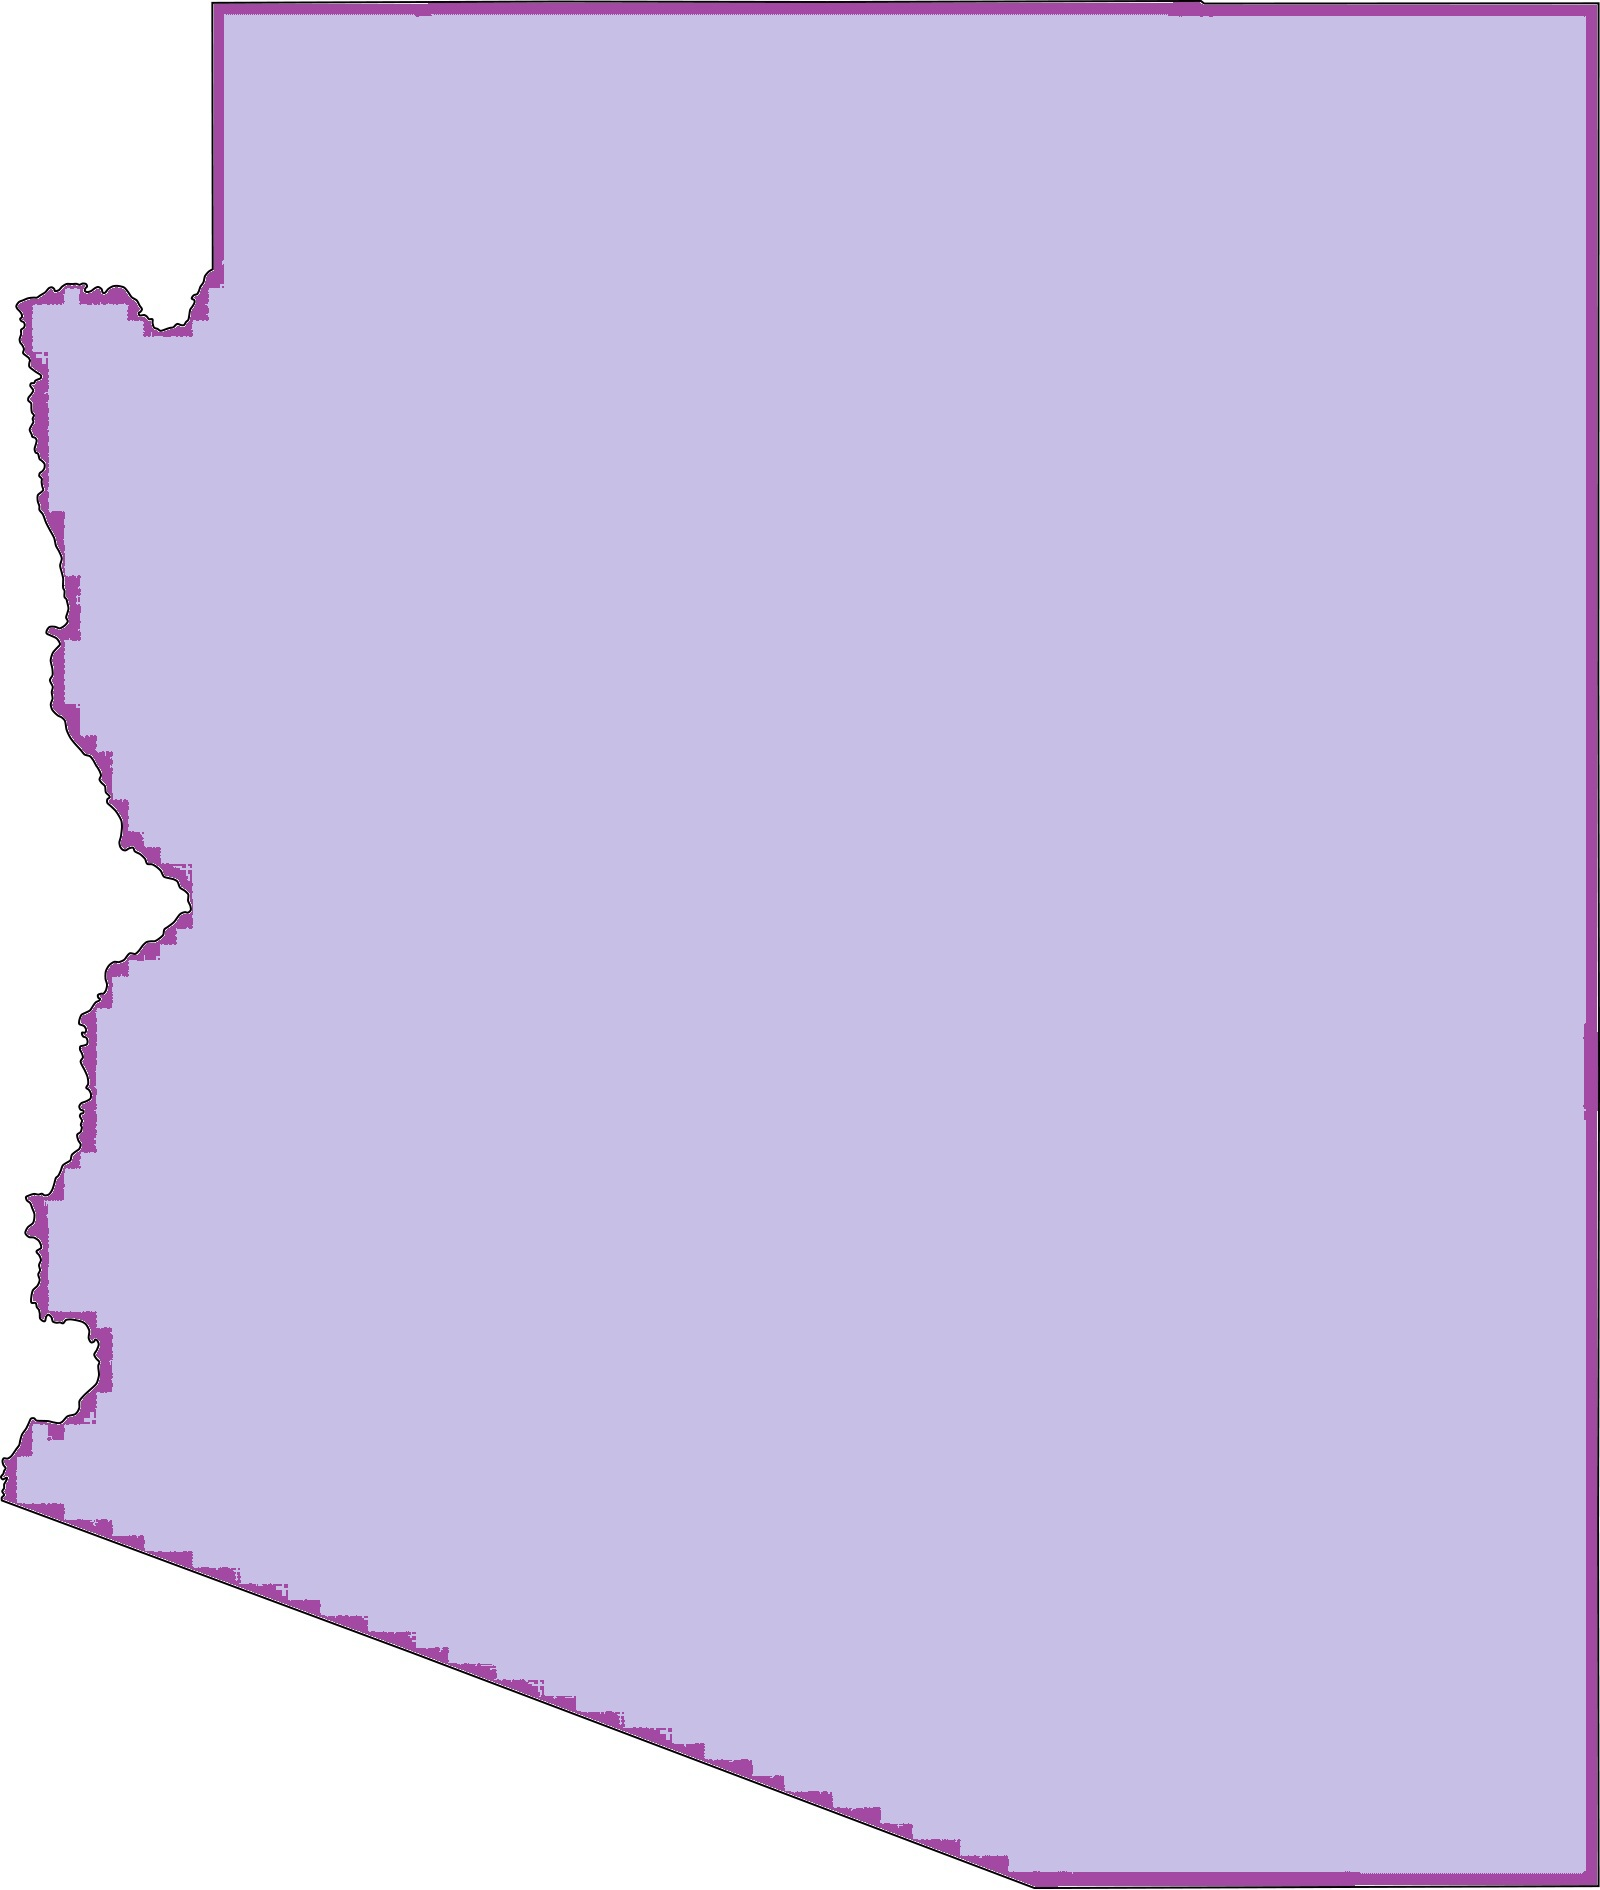 Arizona Blank Outline Map   Blank Outline Map of Arizona – 4